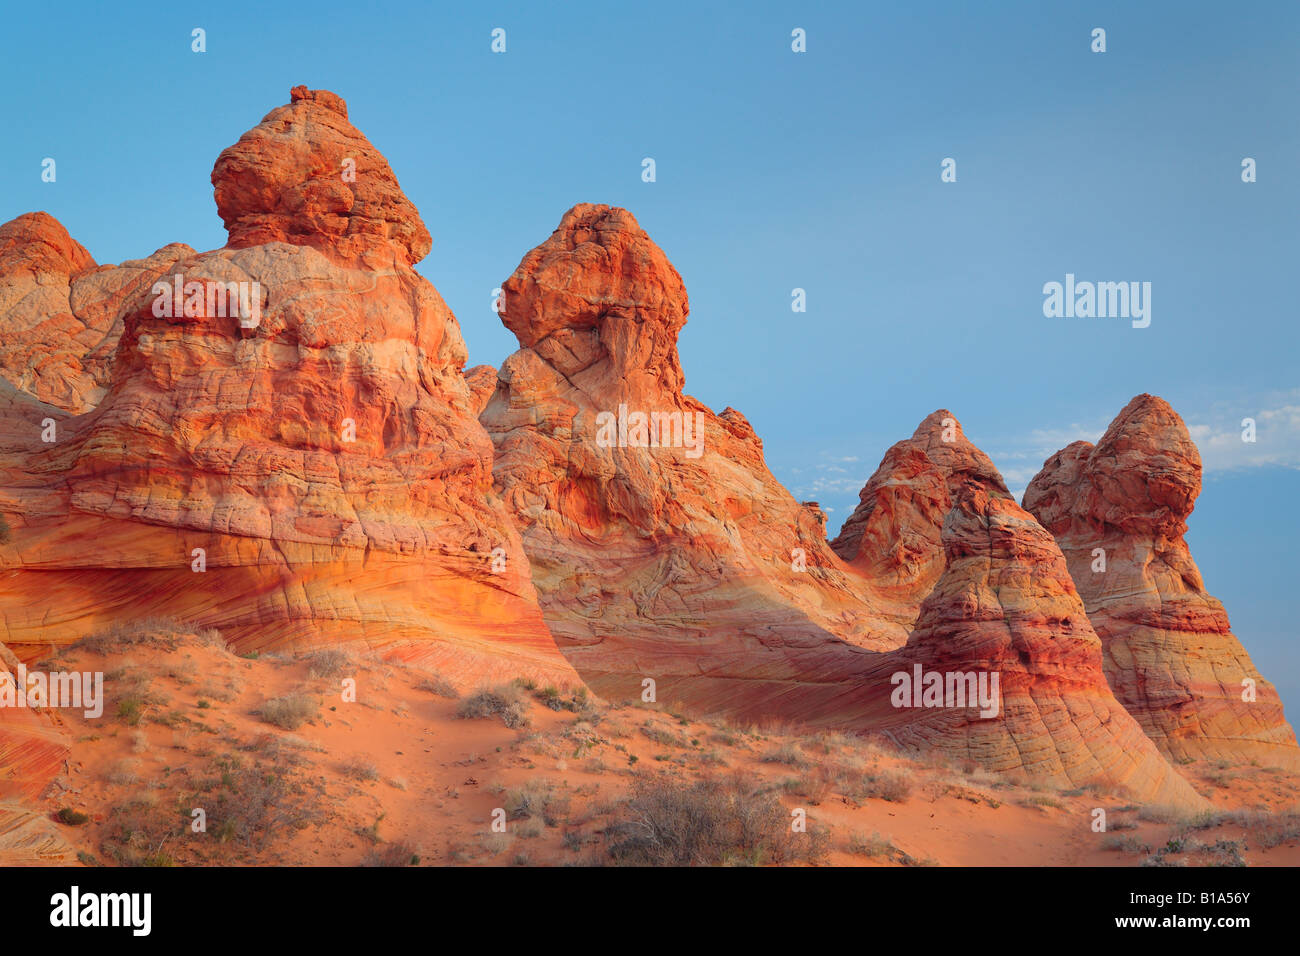 Cottonwood Teepees in Vermilion Cliffs National Monument, Arizona - Stock Image